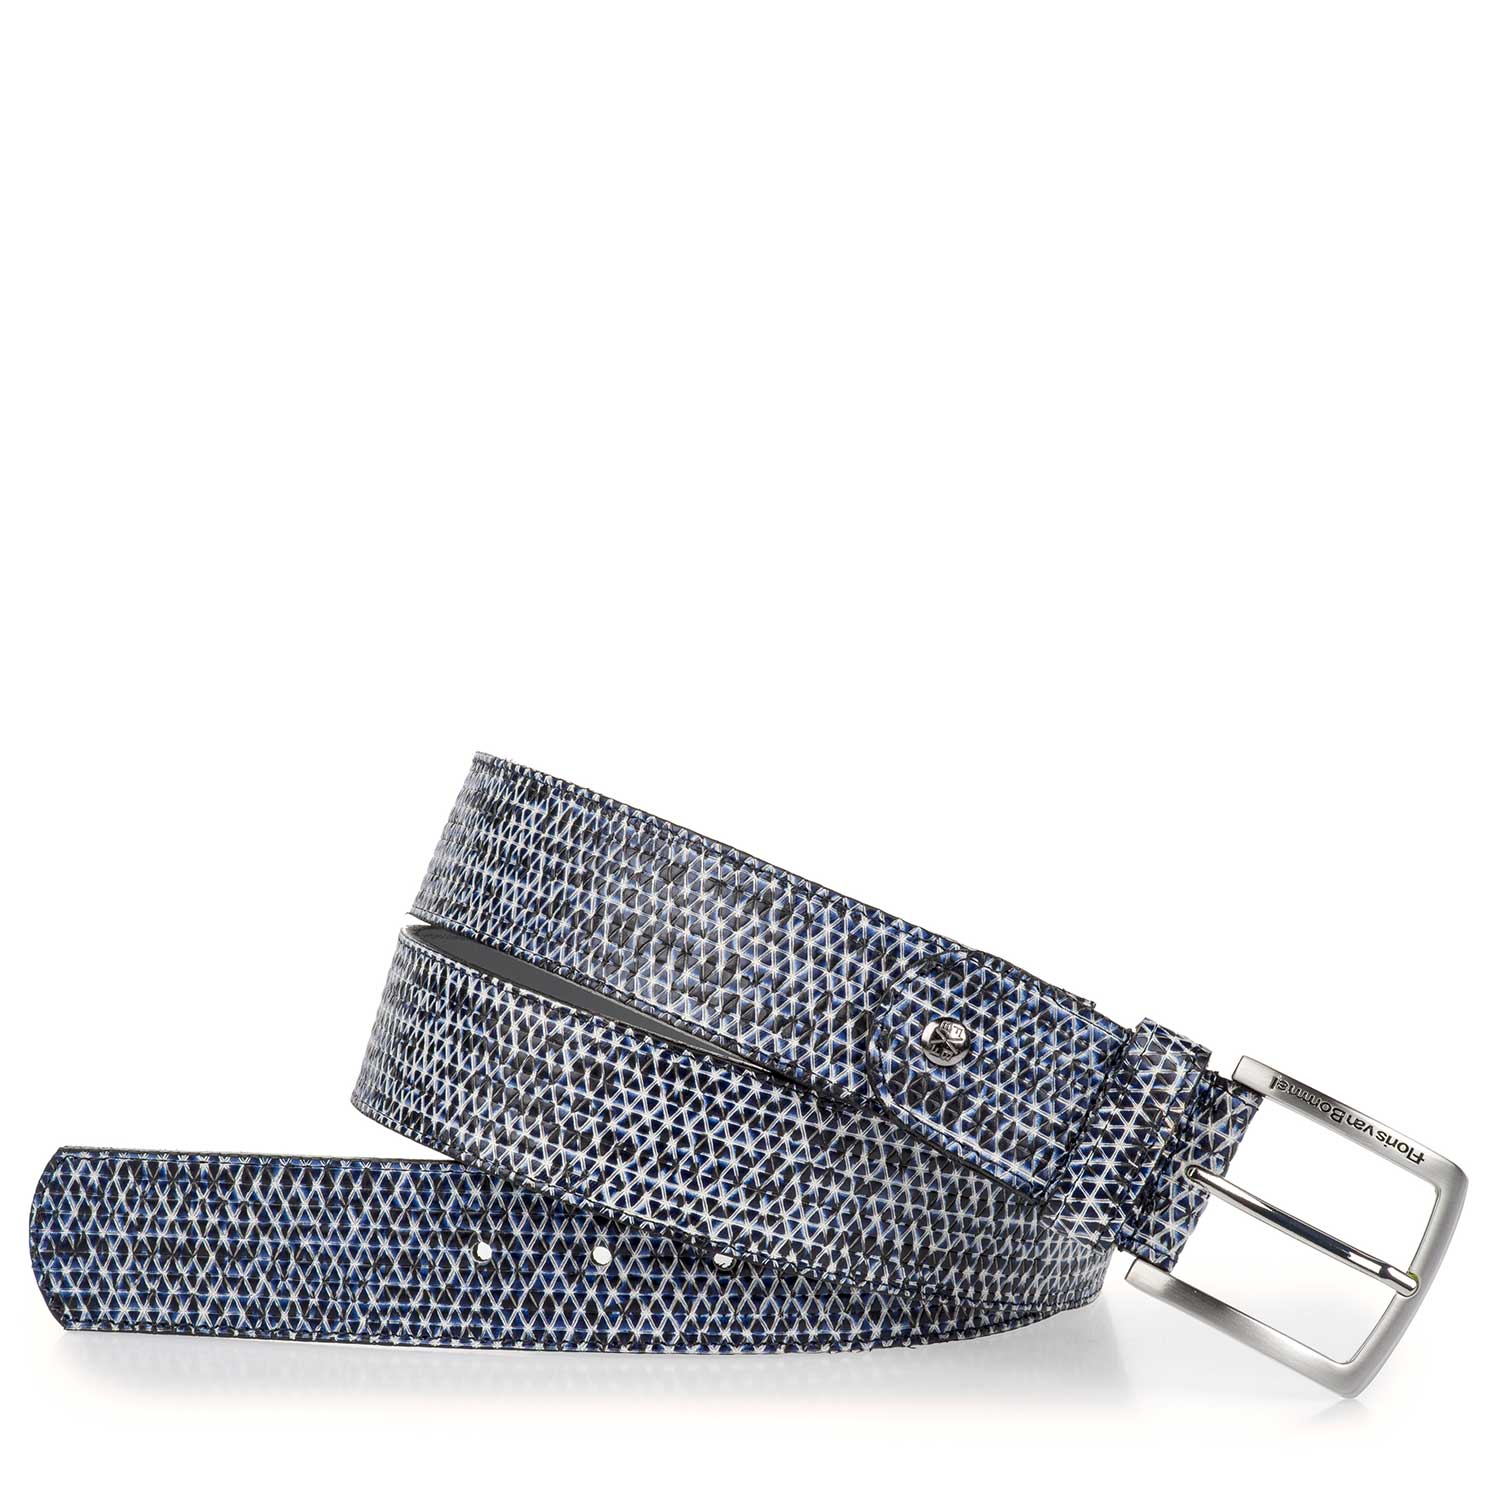 75191/08 - Blue patterned calf's leather belt